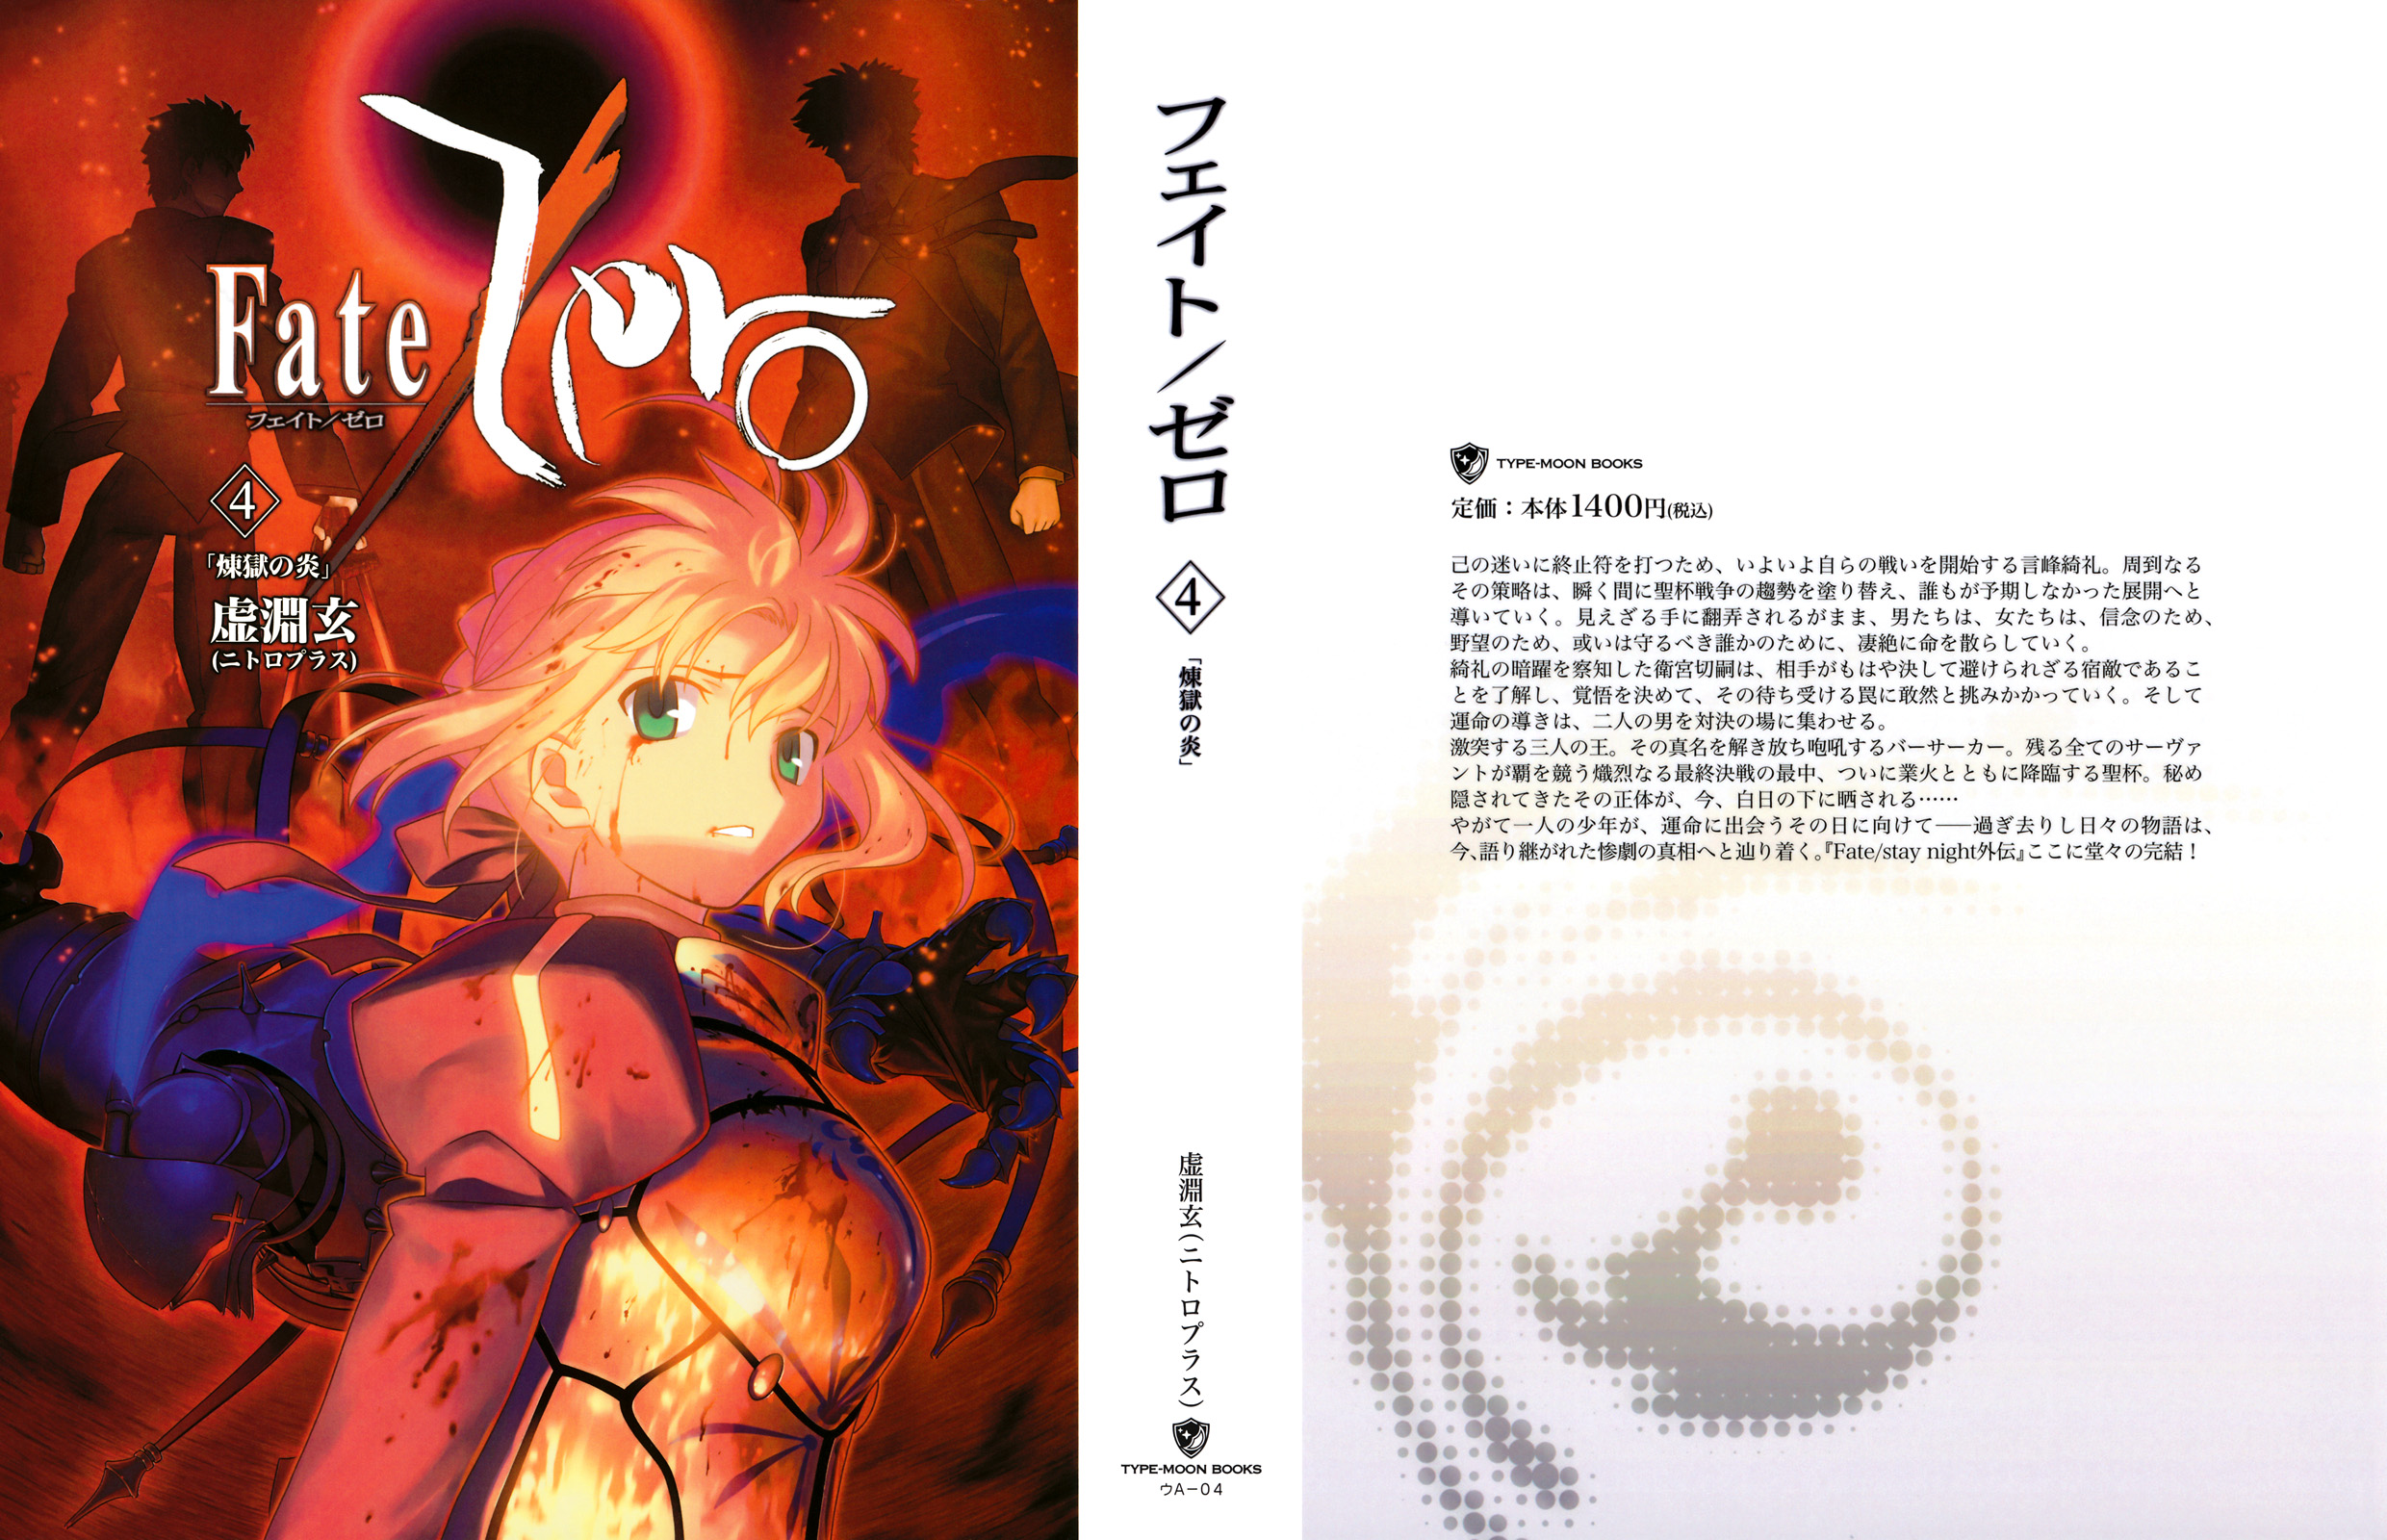 Fate/Zero Vol 4 - Full Text